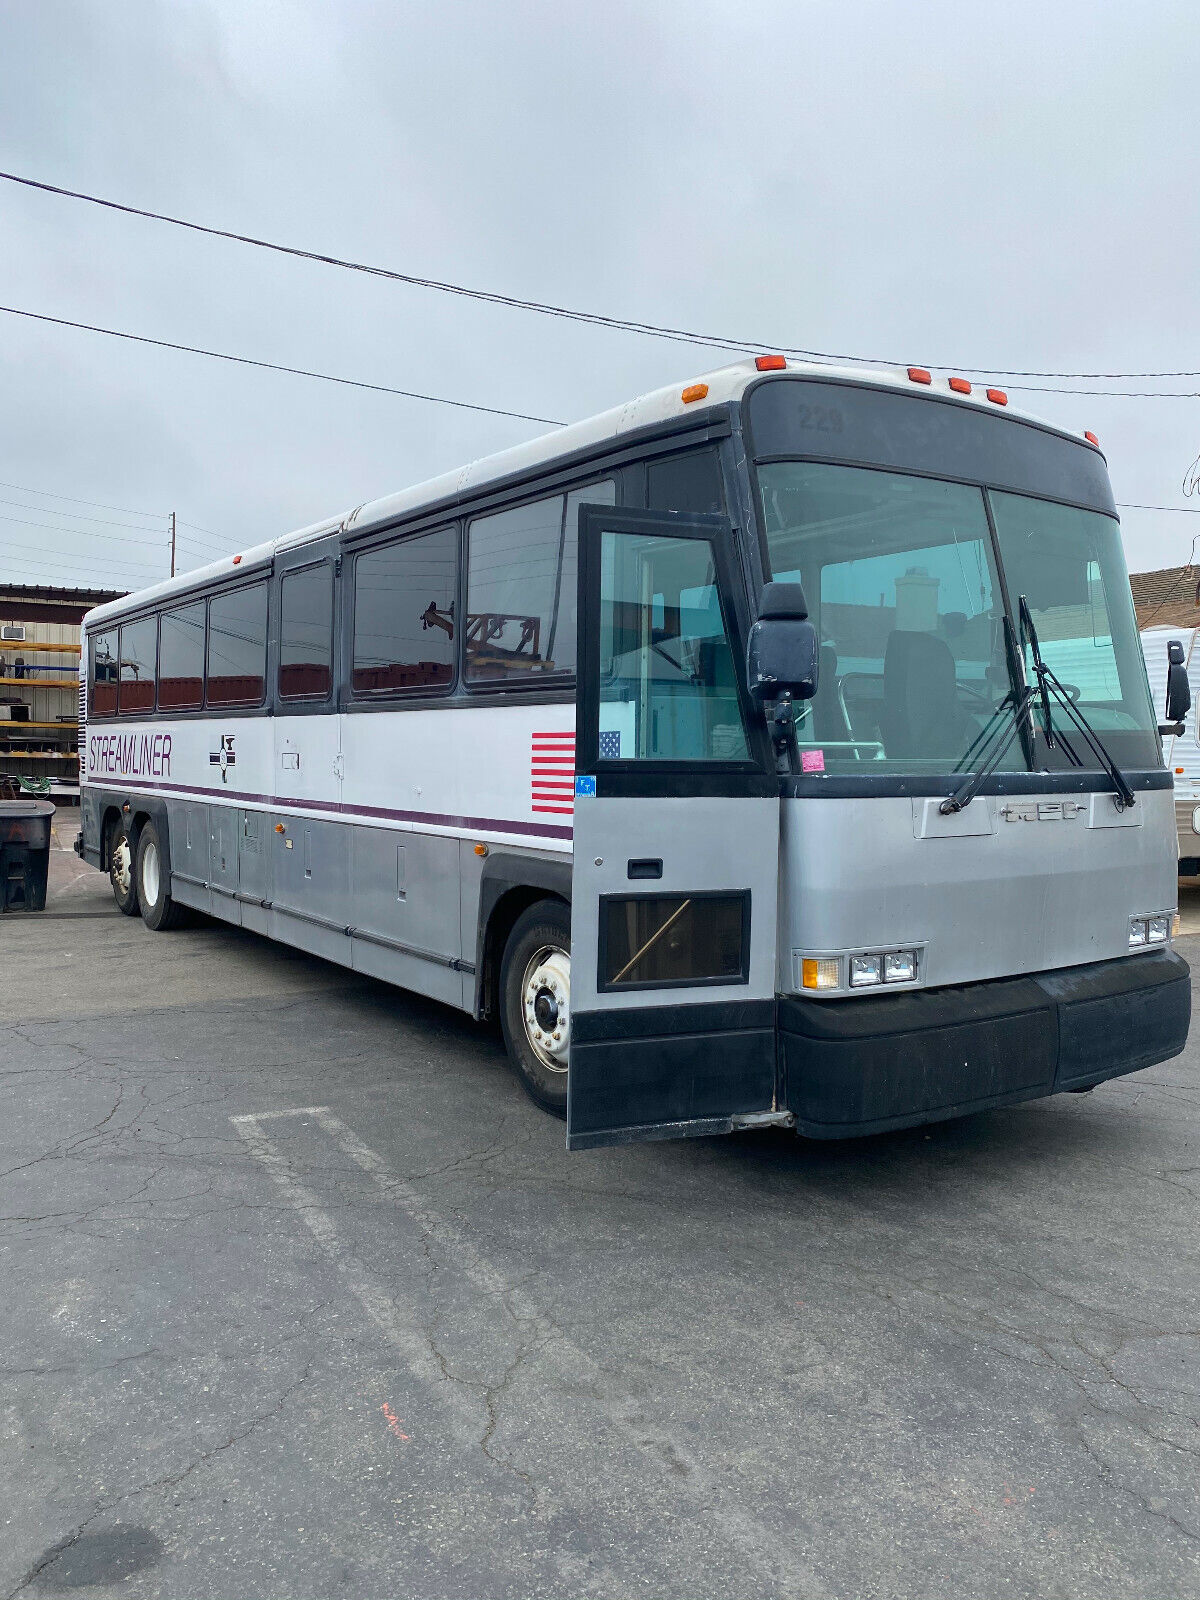 MCI D  Bus with Chairlift for charter, conversion, church, band RV motorhome